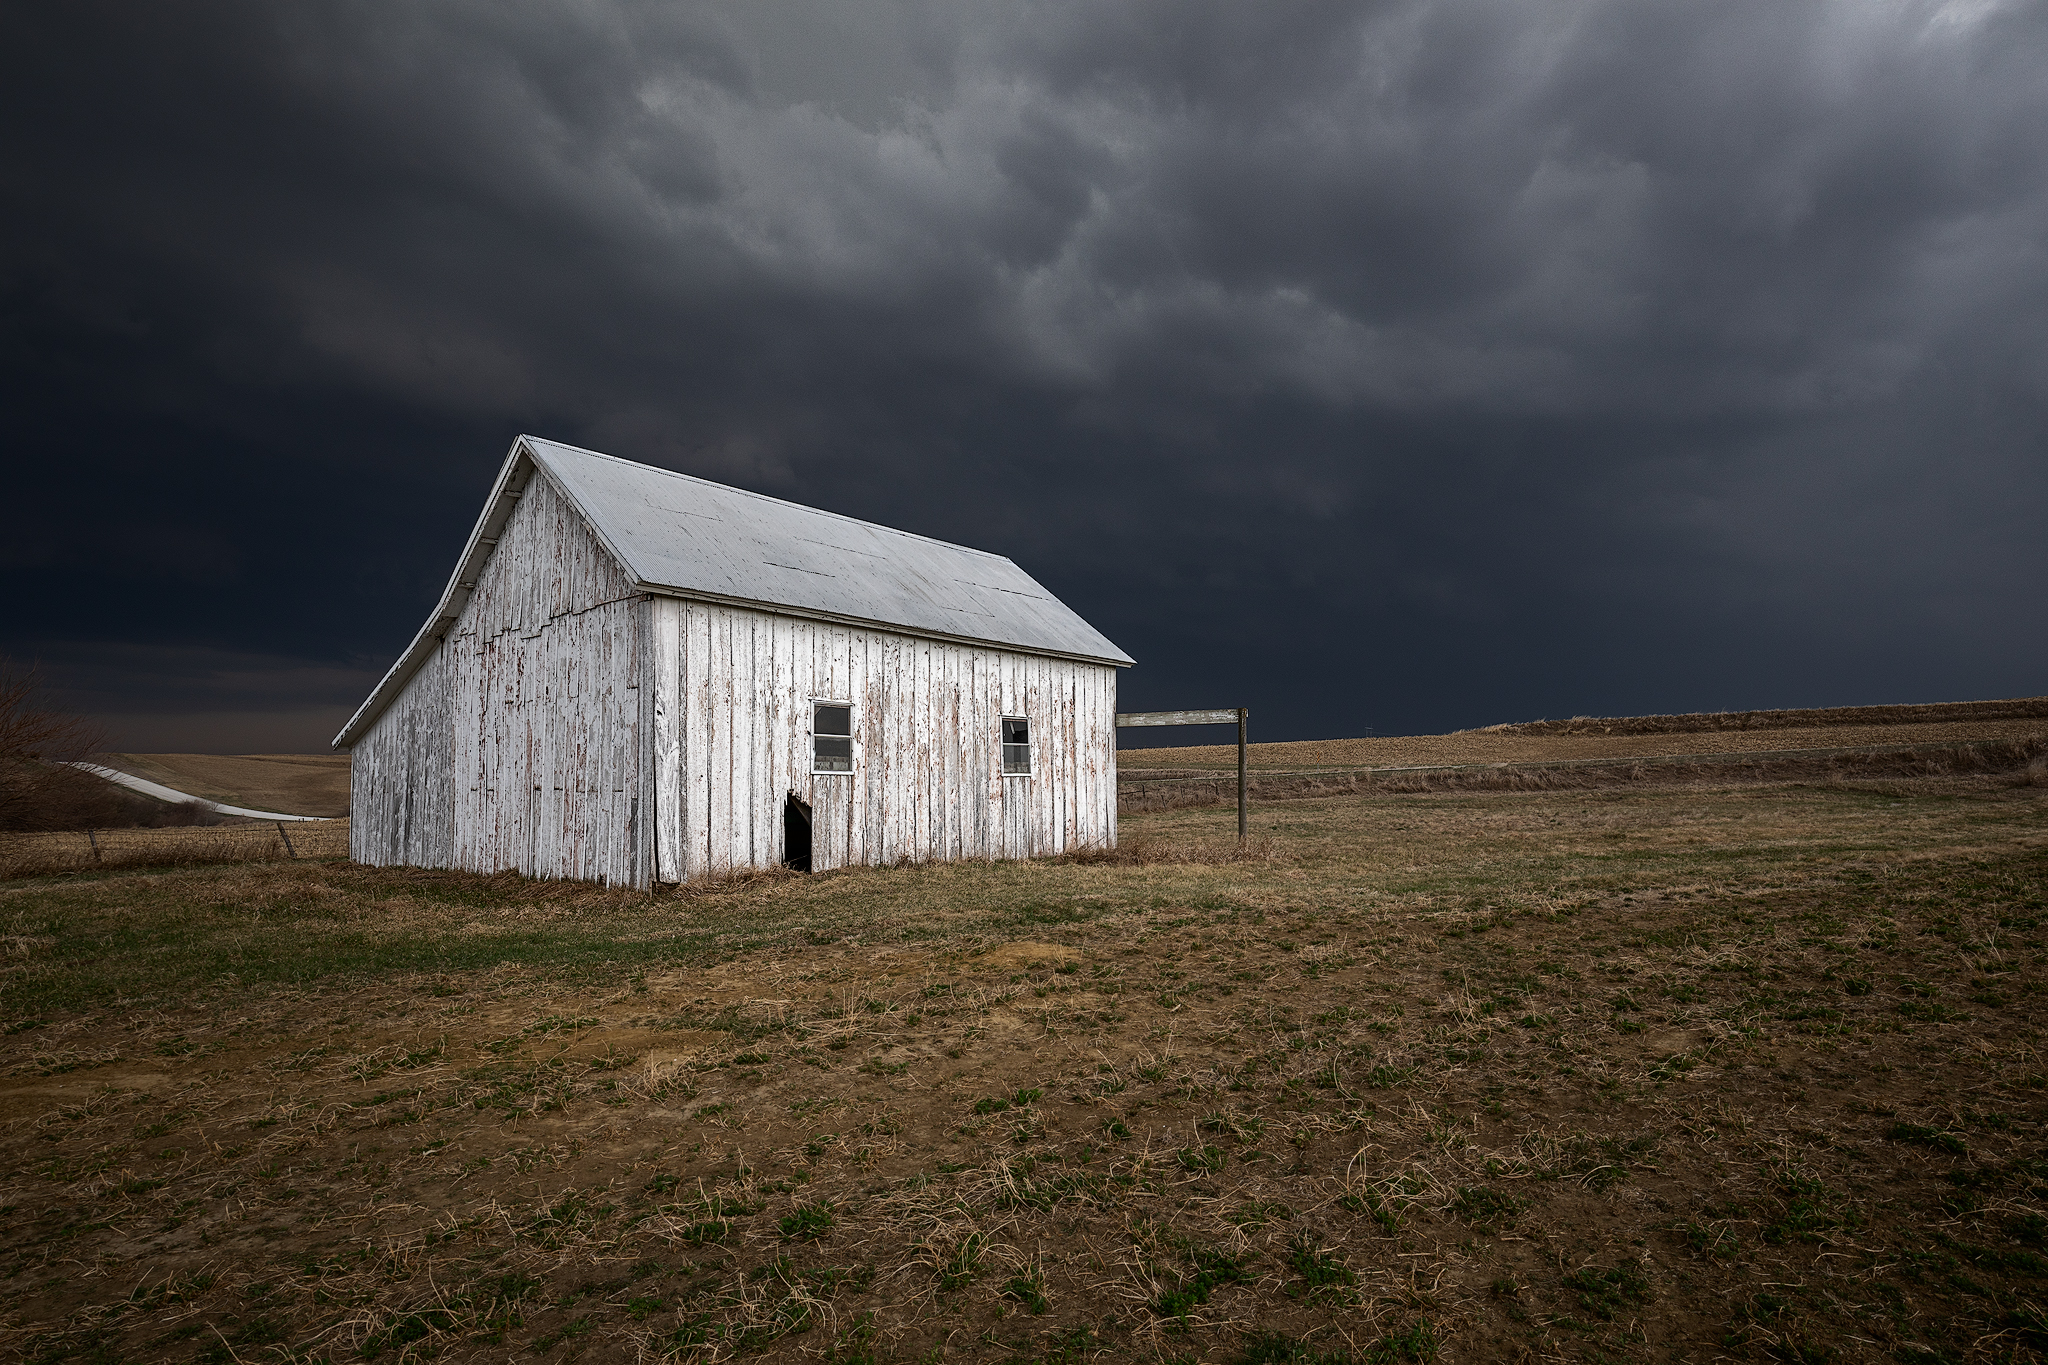 A stormy afternoon in rural Pottawattamie County